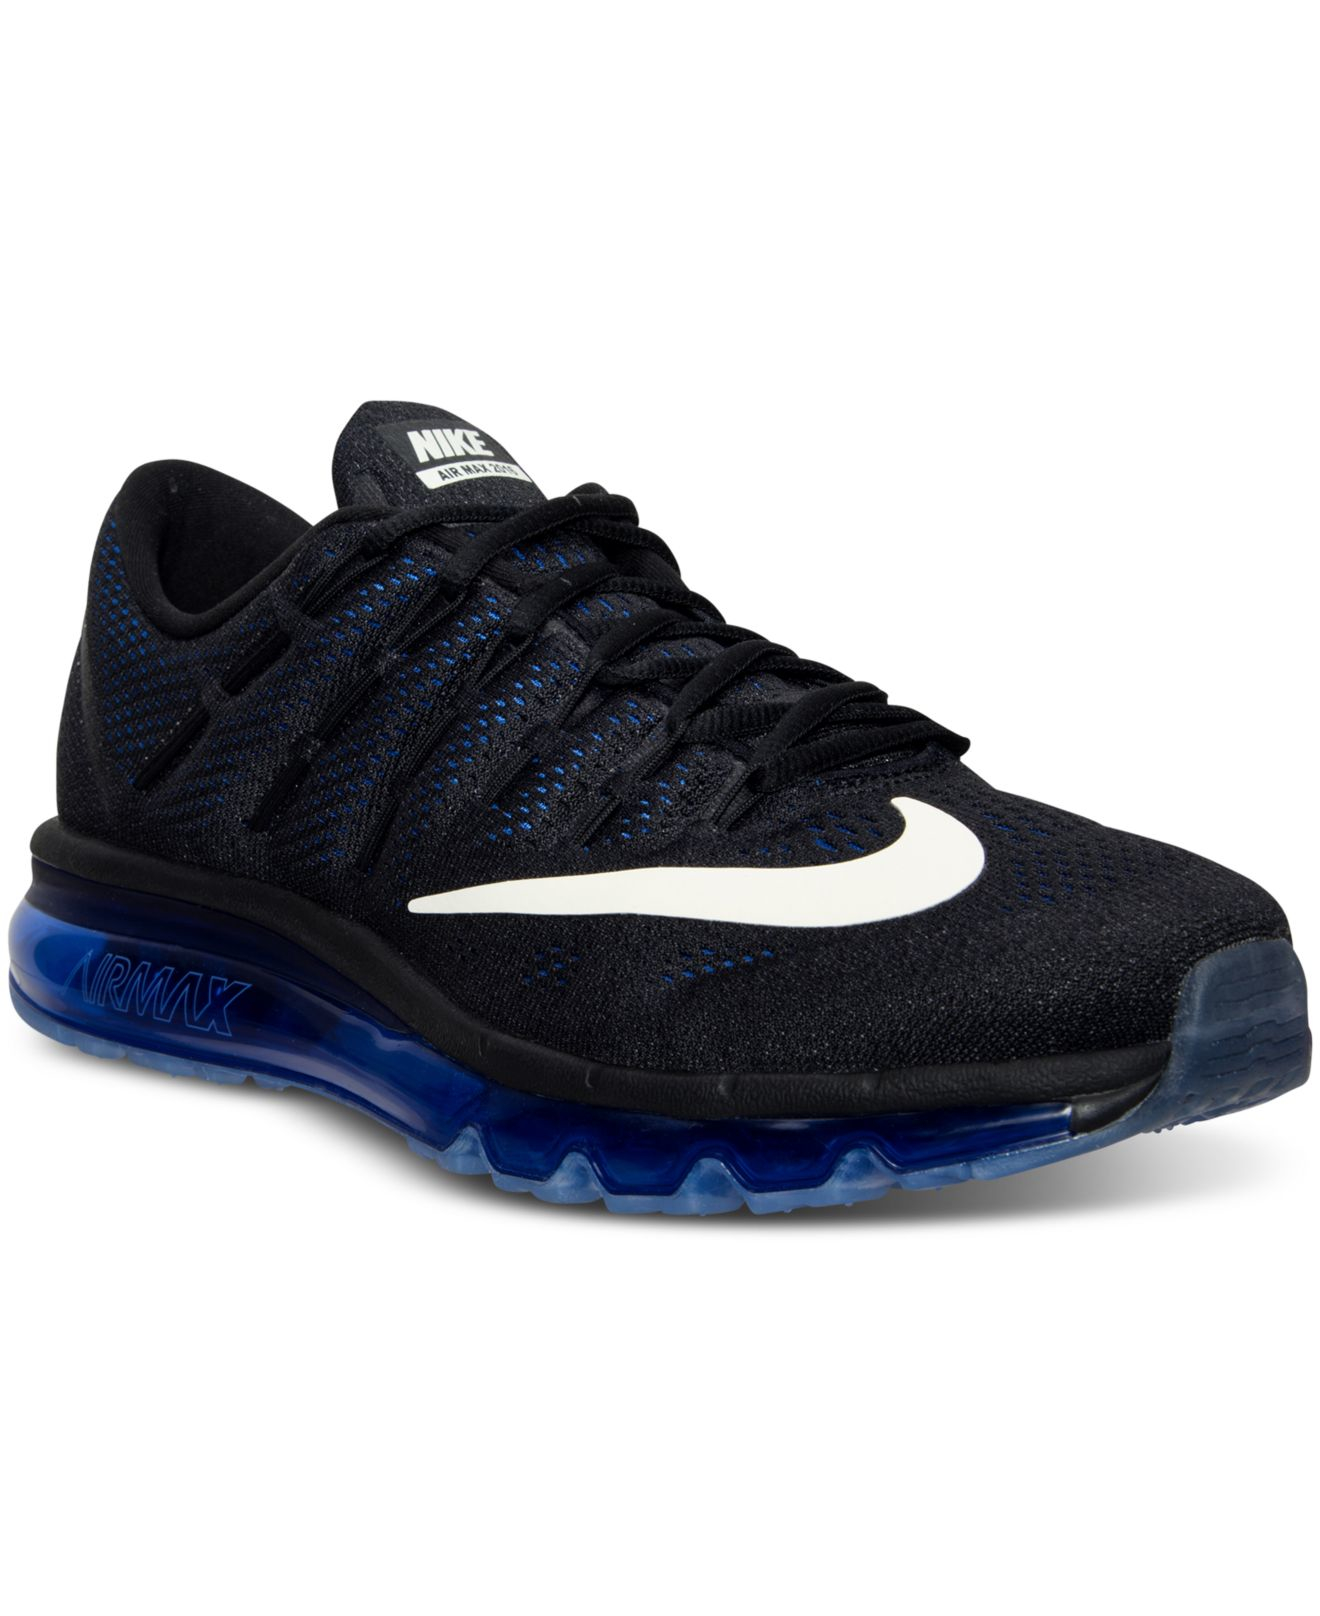 nike running shoes black and blue air max 95 shoes